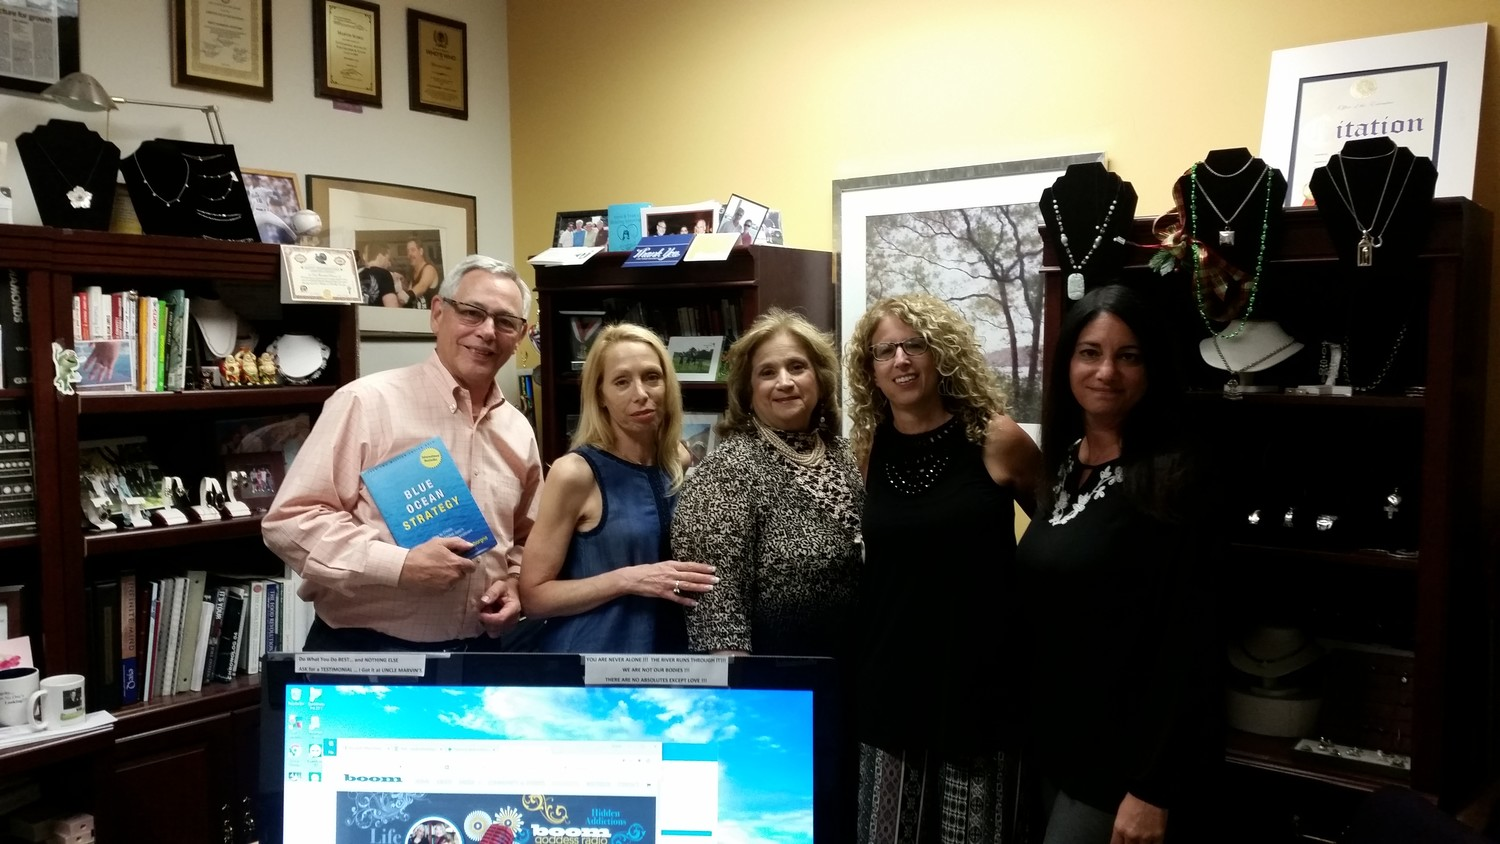 Marvin Soskil, left, Linda Catalano, Valentina Janek, Heidi Shaw and Jacqueline McDermott hope to provide unlimited opportunities for business and social networking through Long Island Gems.